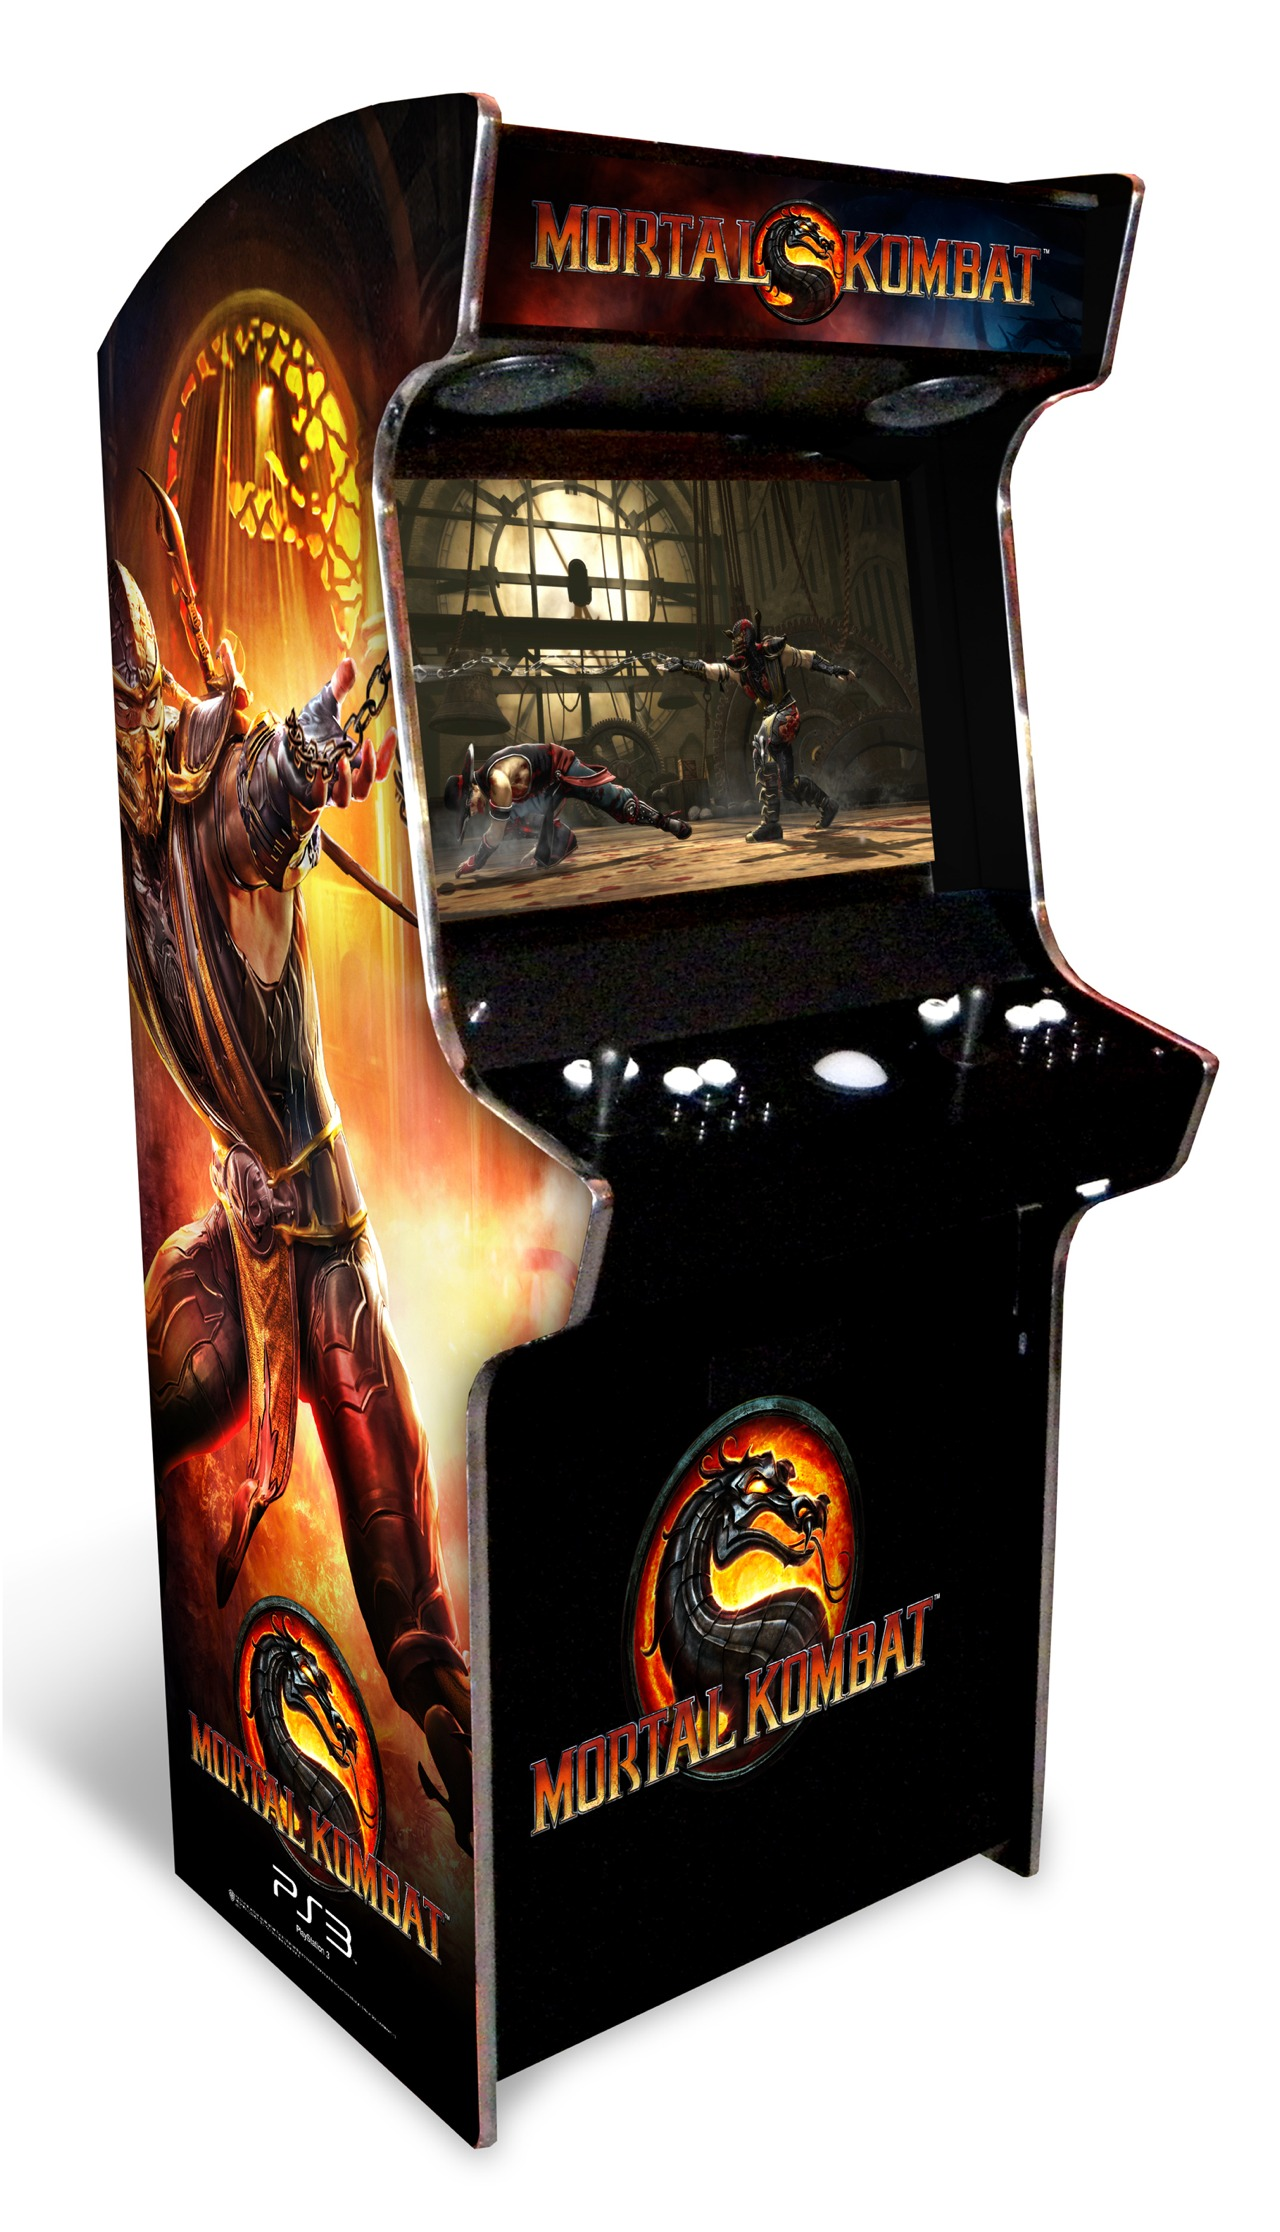 arcade heroes mortal kombat 39 s new arcade cabinet made for one lucky person in the uk arcade heroes. Black Bedroom Furniture Sets. Home Design Ideas